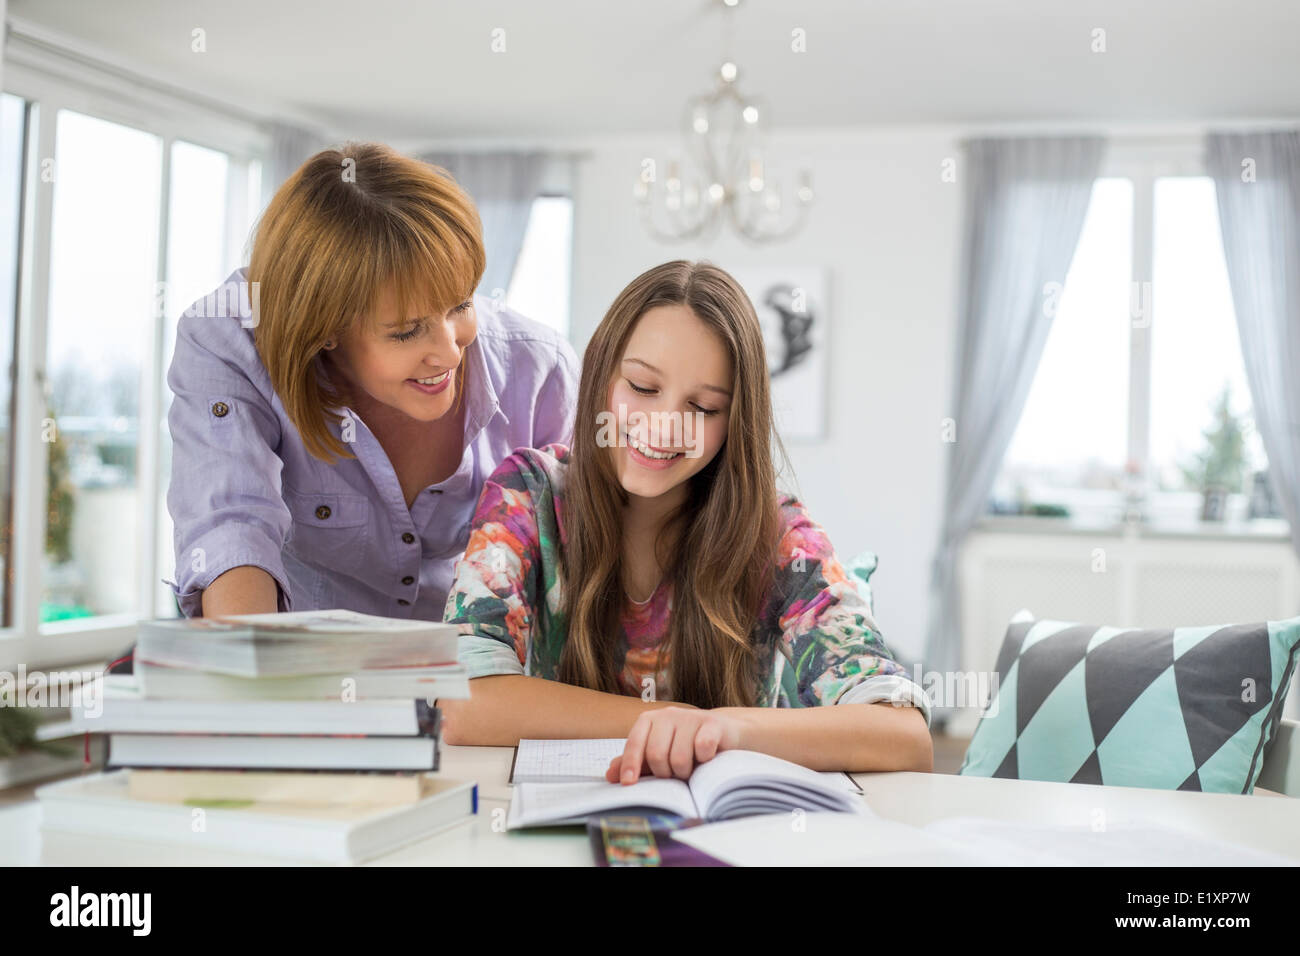 Smiling mother assisting daughter in doing homework at table - Stock Image